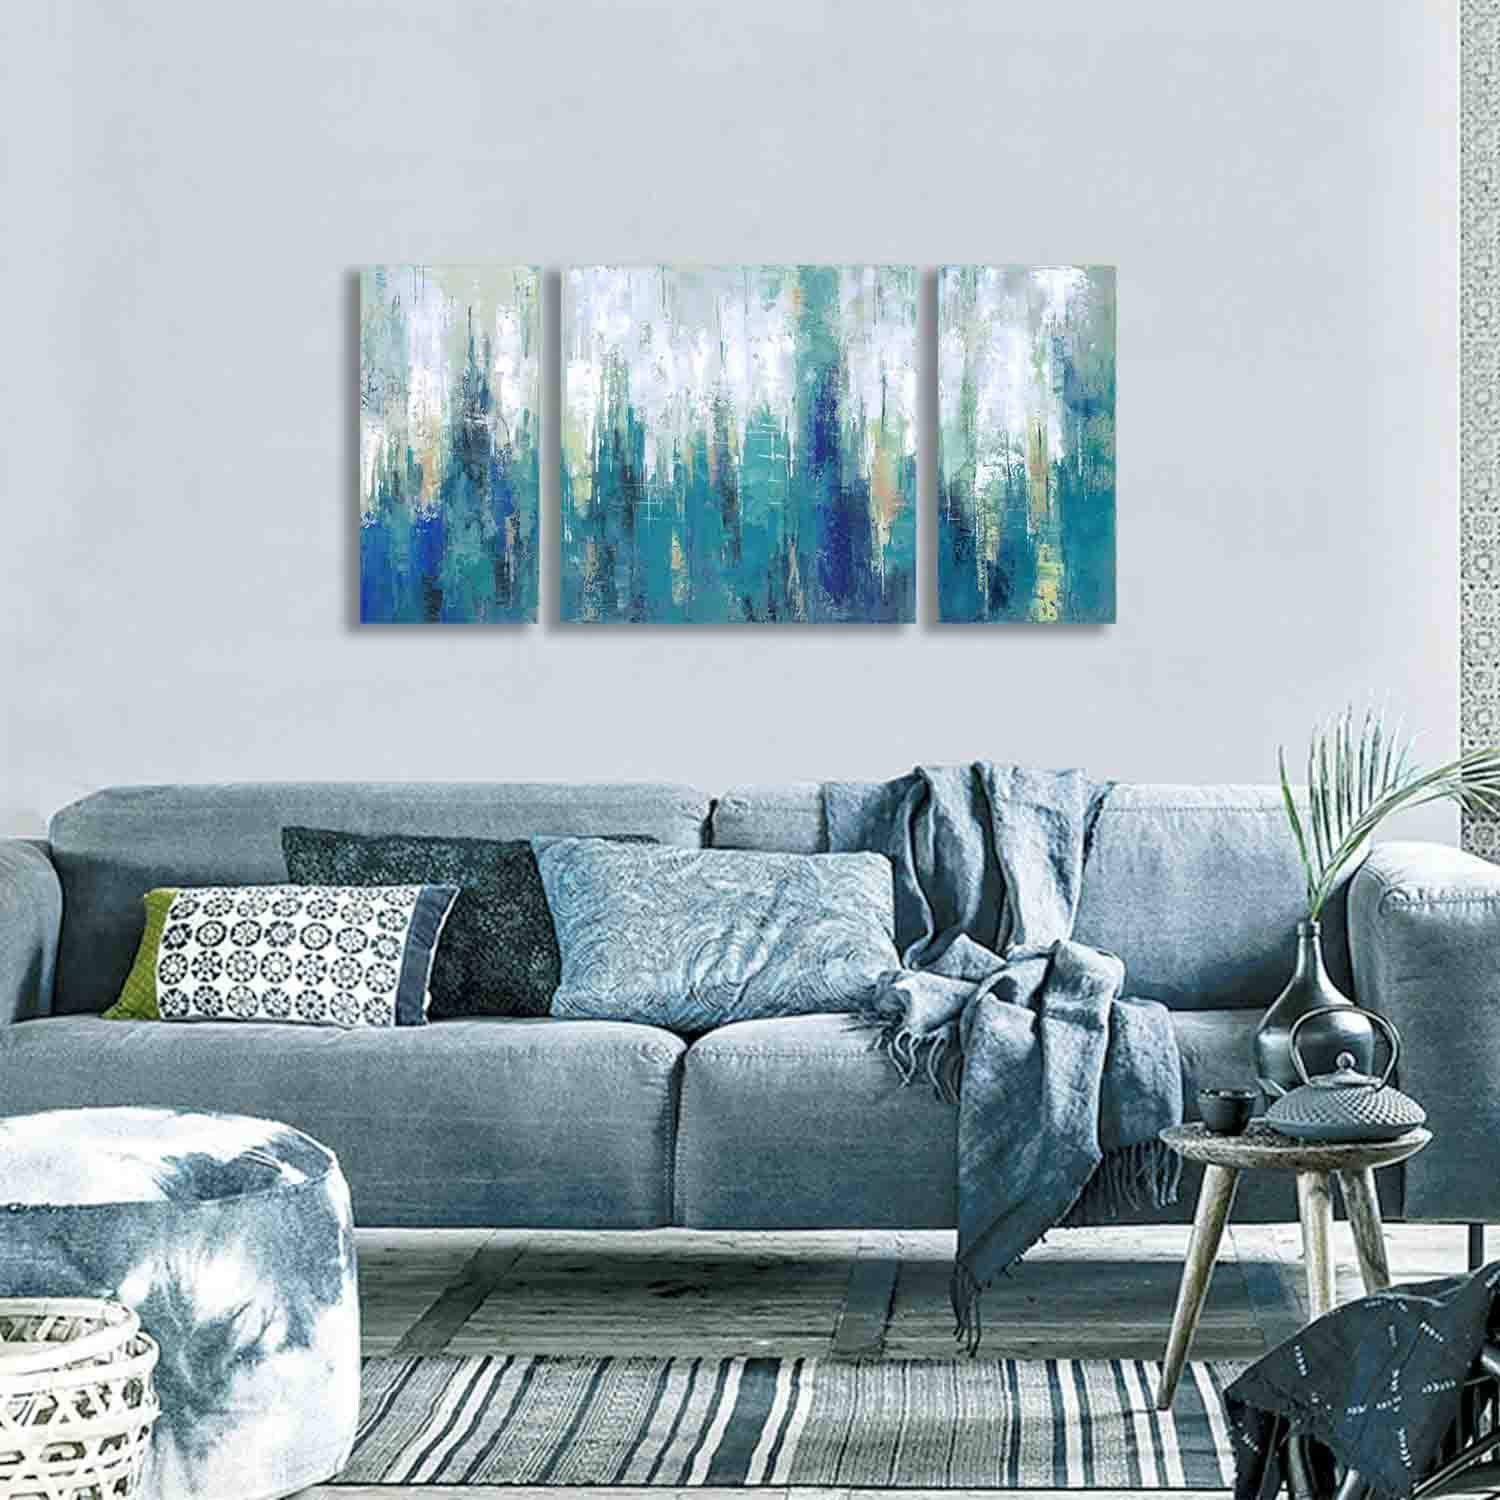 Paintings 3 Piece Minimalist Home Decor 3hdeko Stretched 3d Smoky Blue Gray Abstract Canvas Wall Art Silver Glitter Embellished Hand Brushed Textured Painting For Living Room Bedroom 60x30inch Kitchen